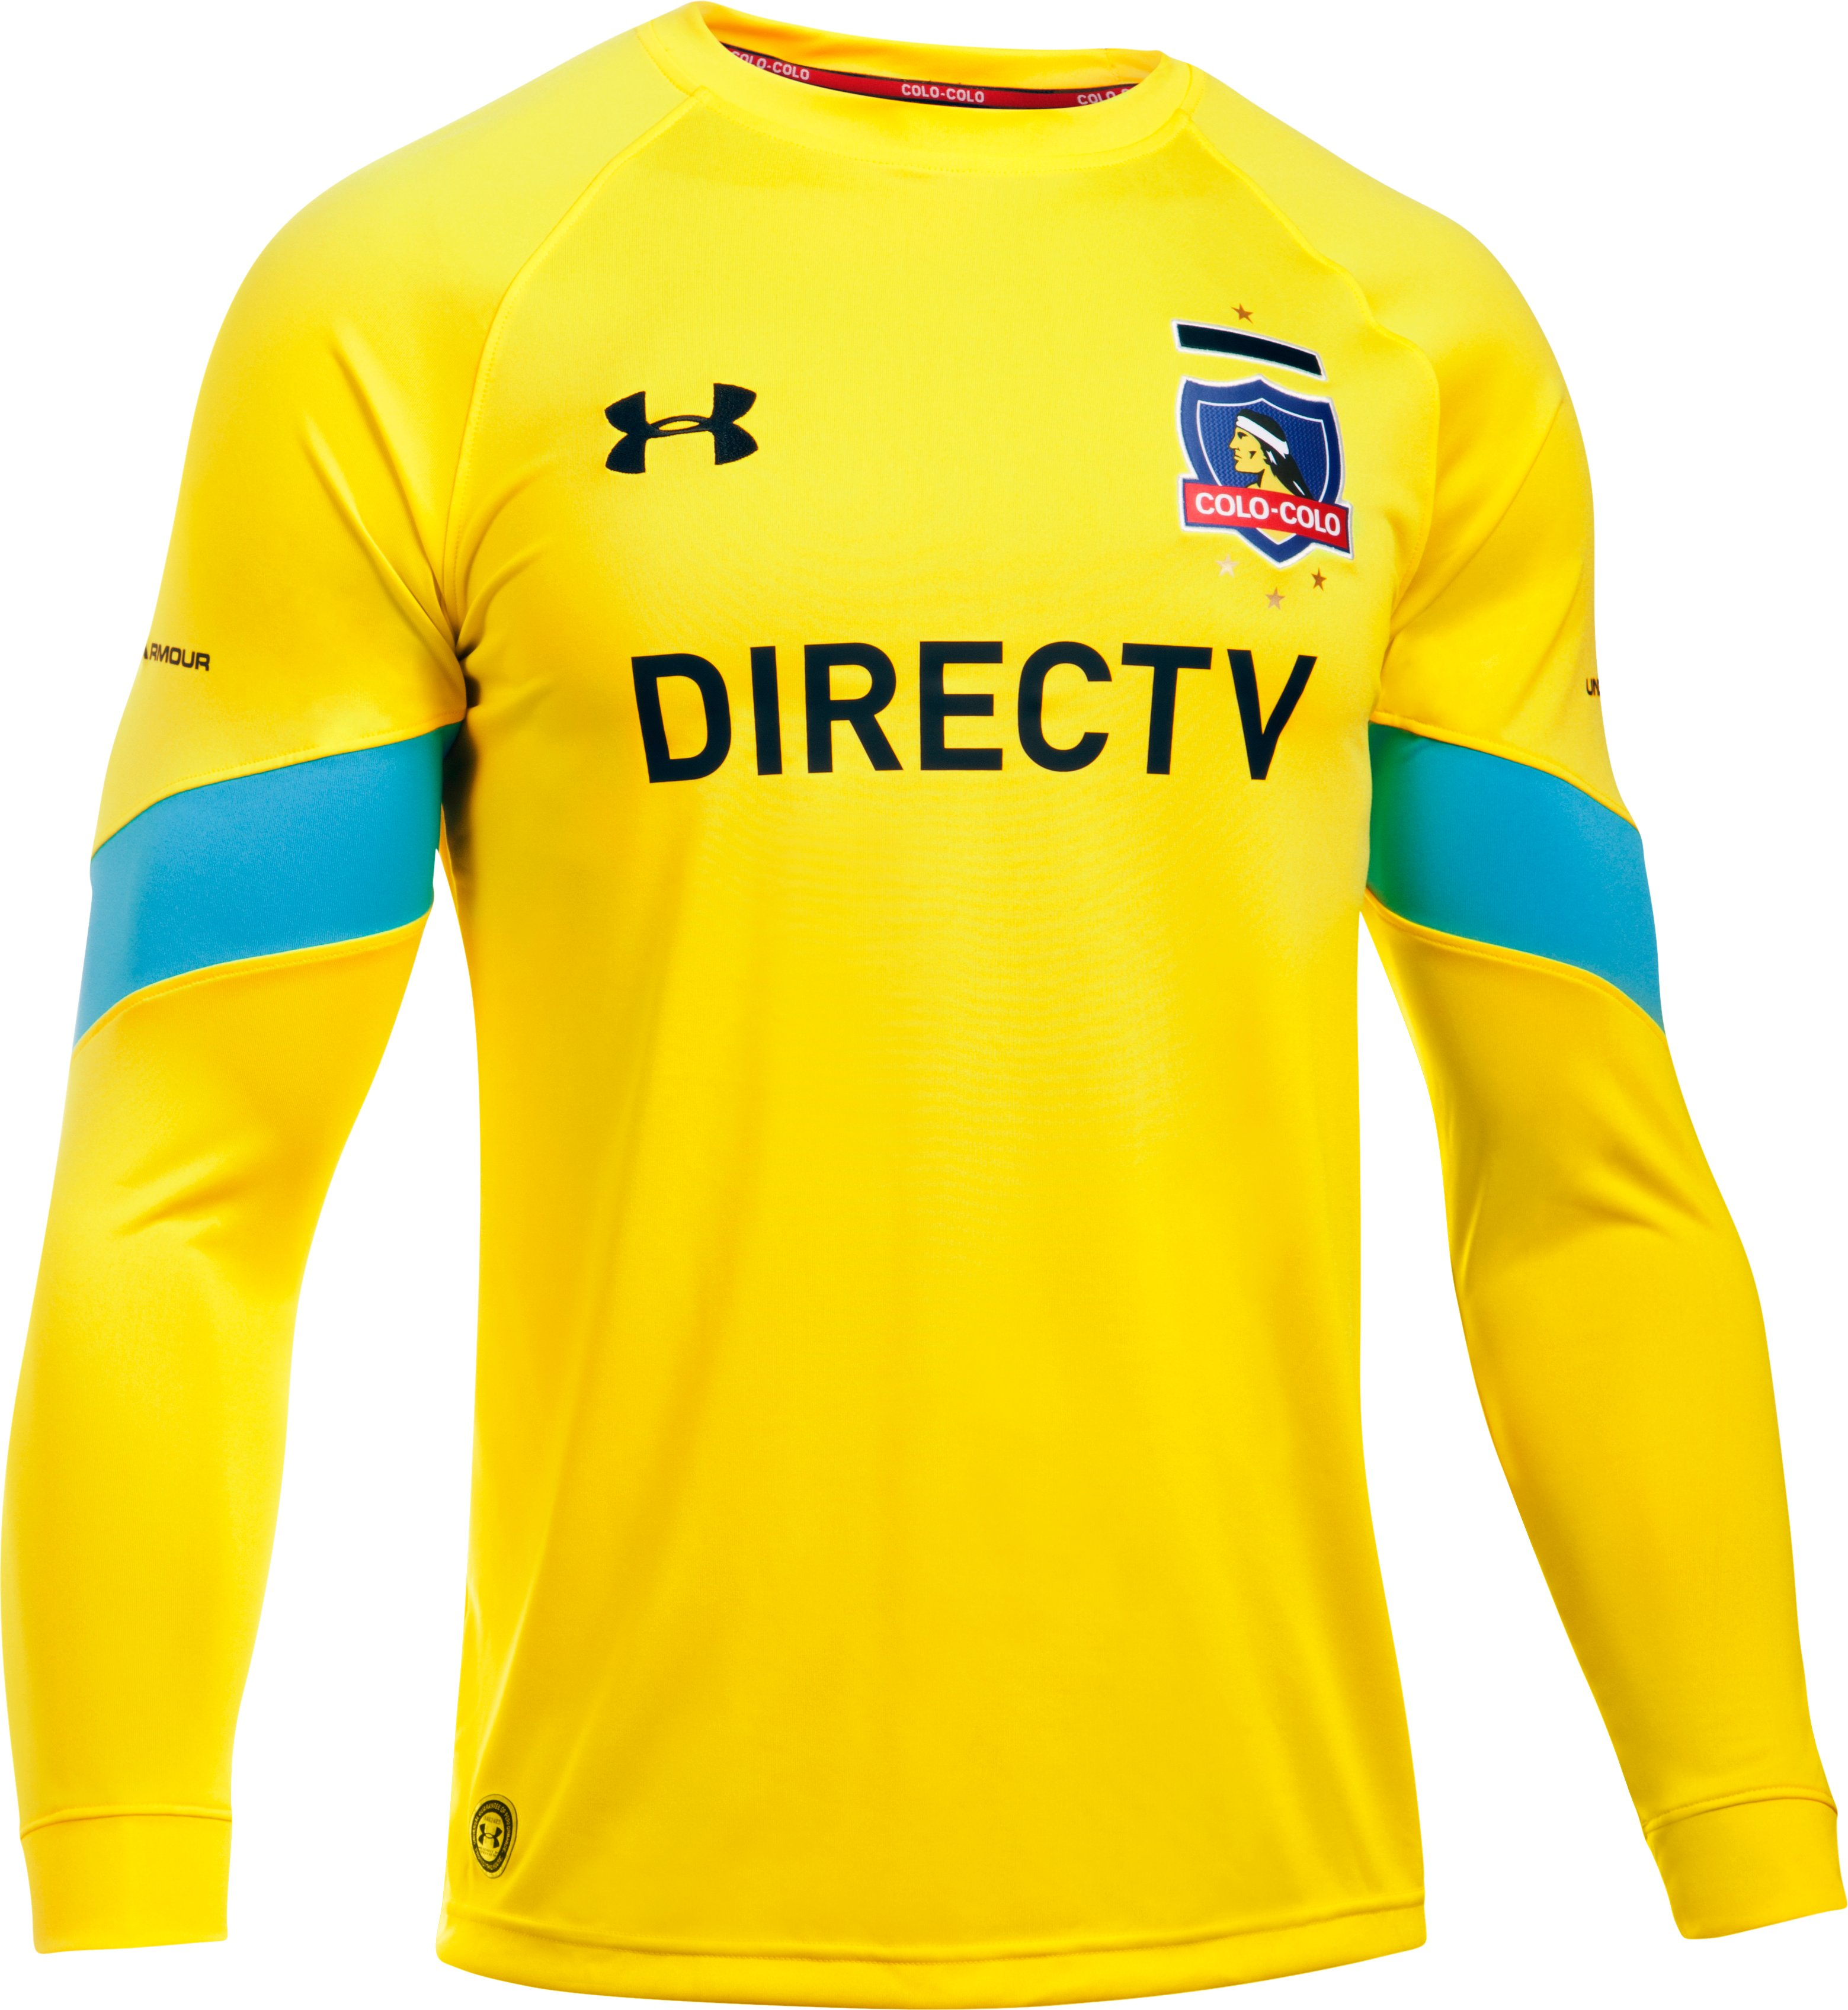 Men's Colo-Colo 16/17 Goalkeeper Replica Jersey, Sunbleached,